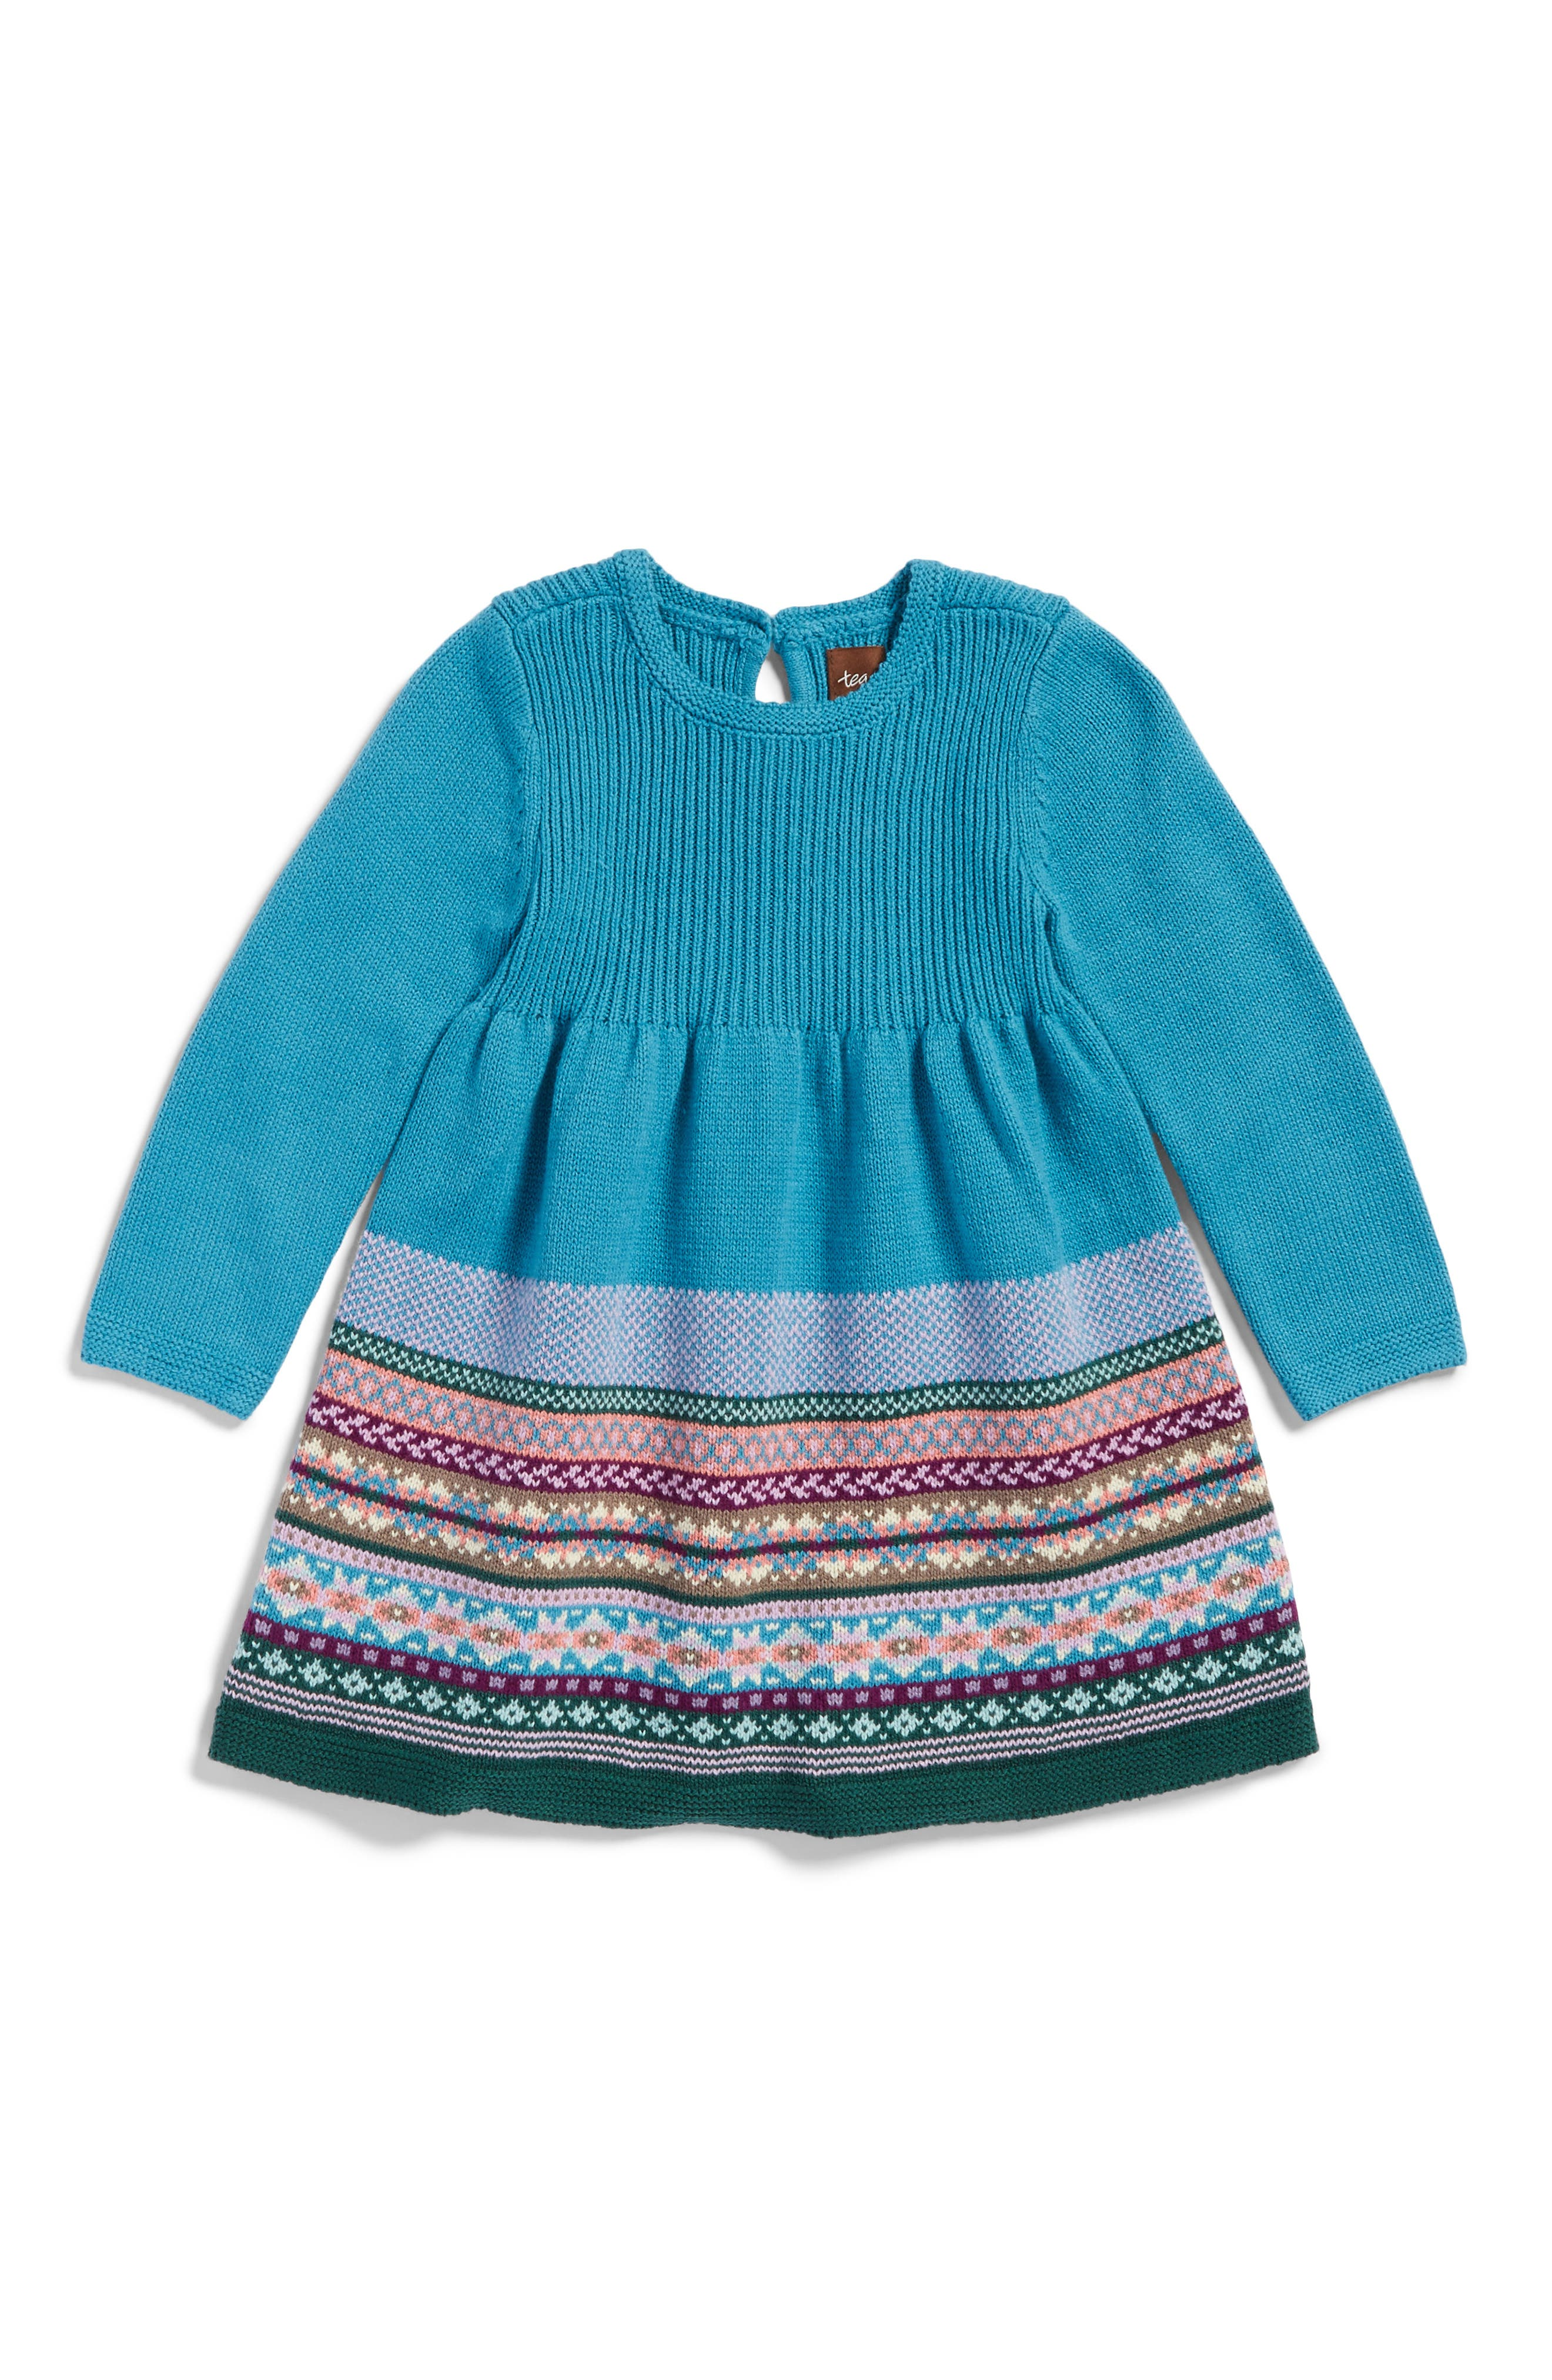 Alternate Image 1 Selected - Tea Collection Suzette Sweater Dress (Baby Girls)